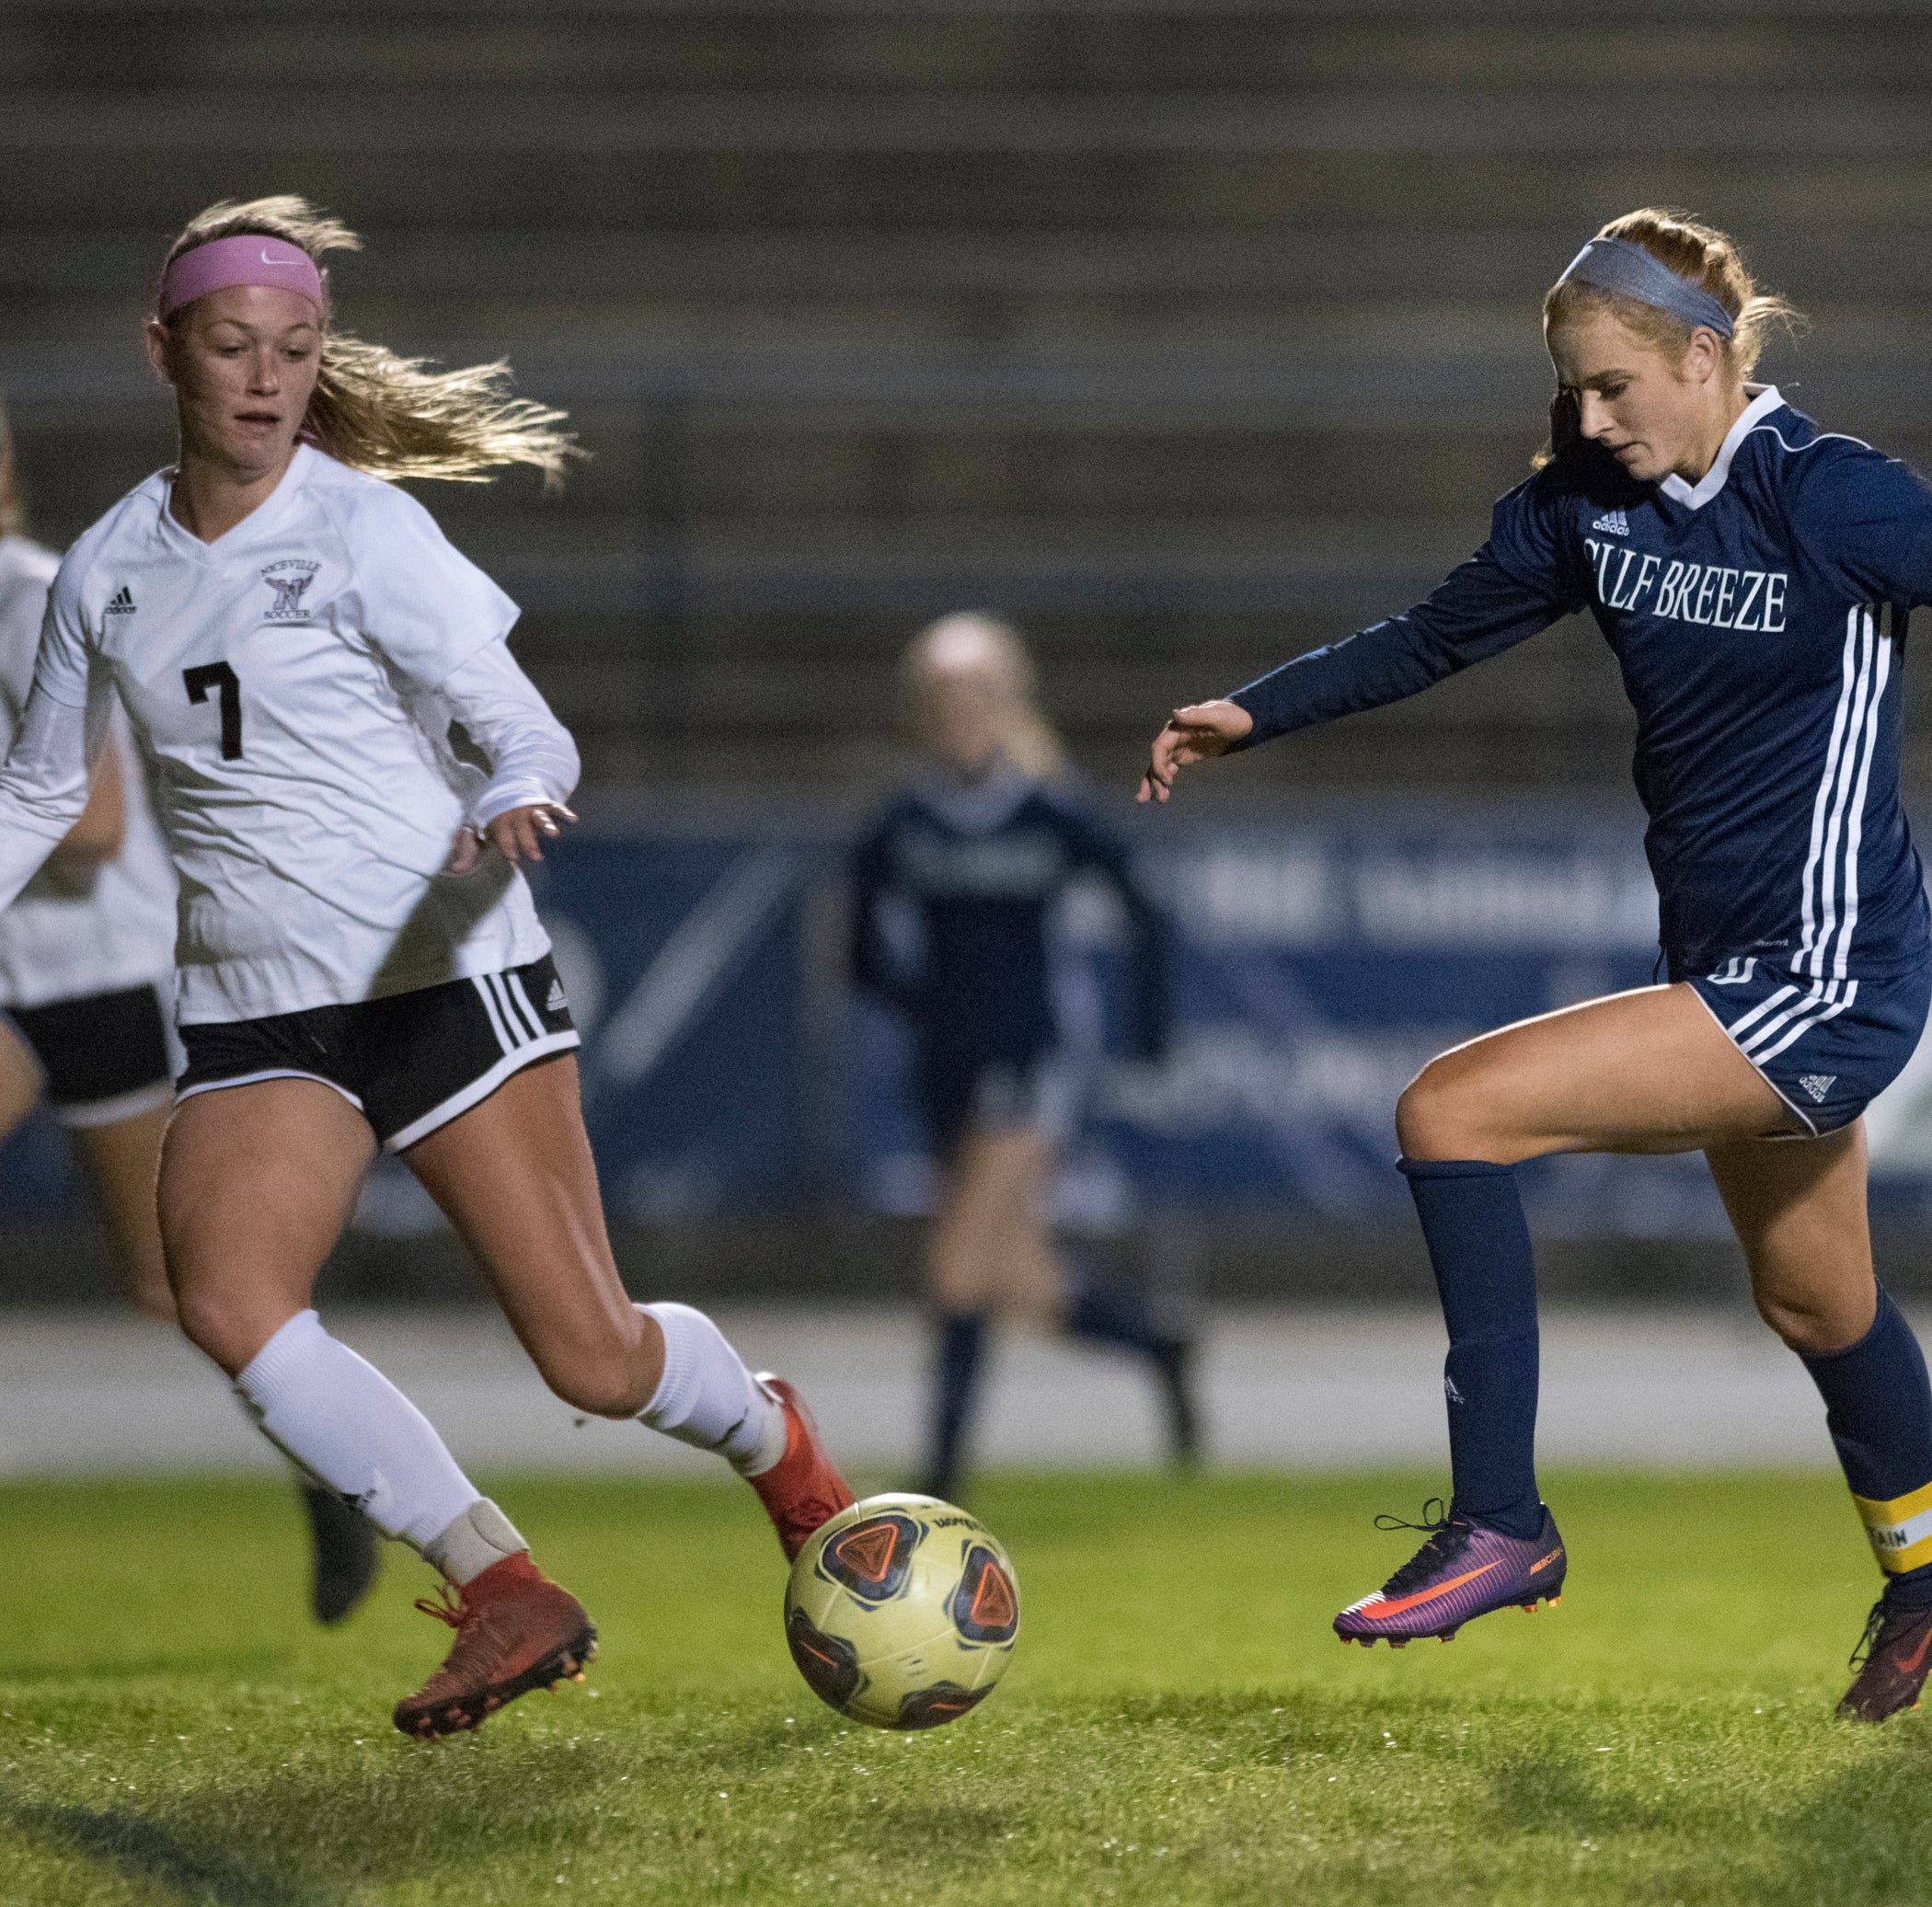 Gulf Breeze downs Eastside to advance to back-to-back state finals